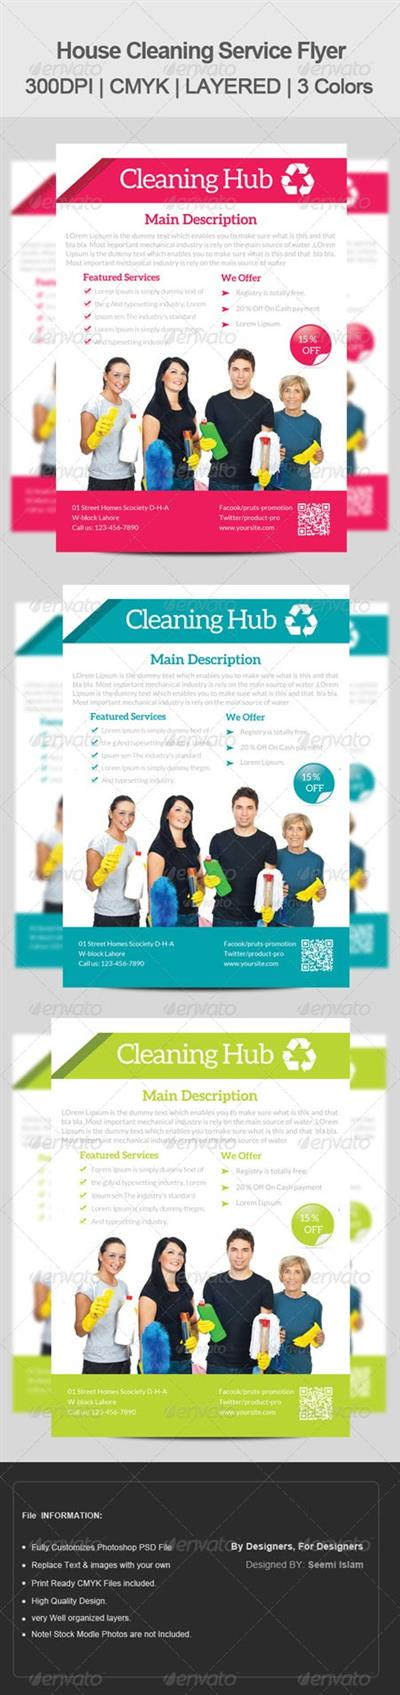 ����� House Cleaning Services Flyer 33bff734e97875c691a11e345eb791fb.jpg